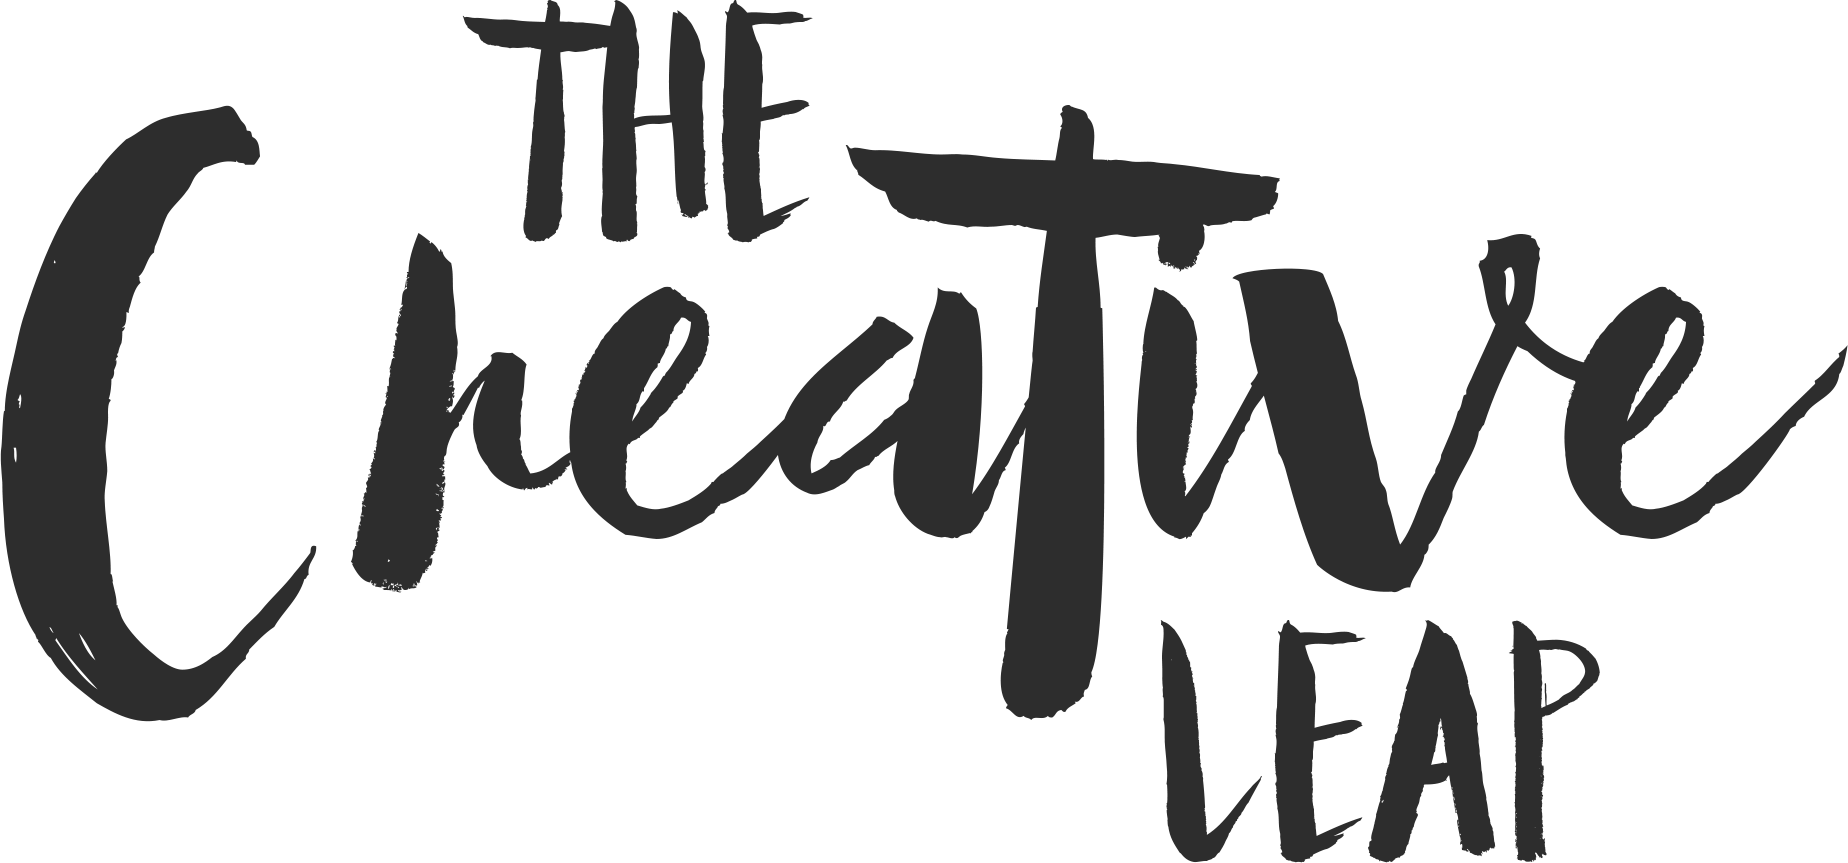 The-Creative-Leap-Logo.png